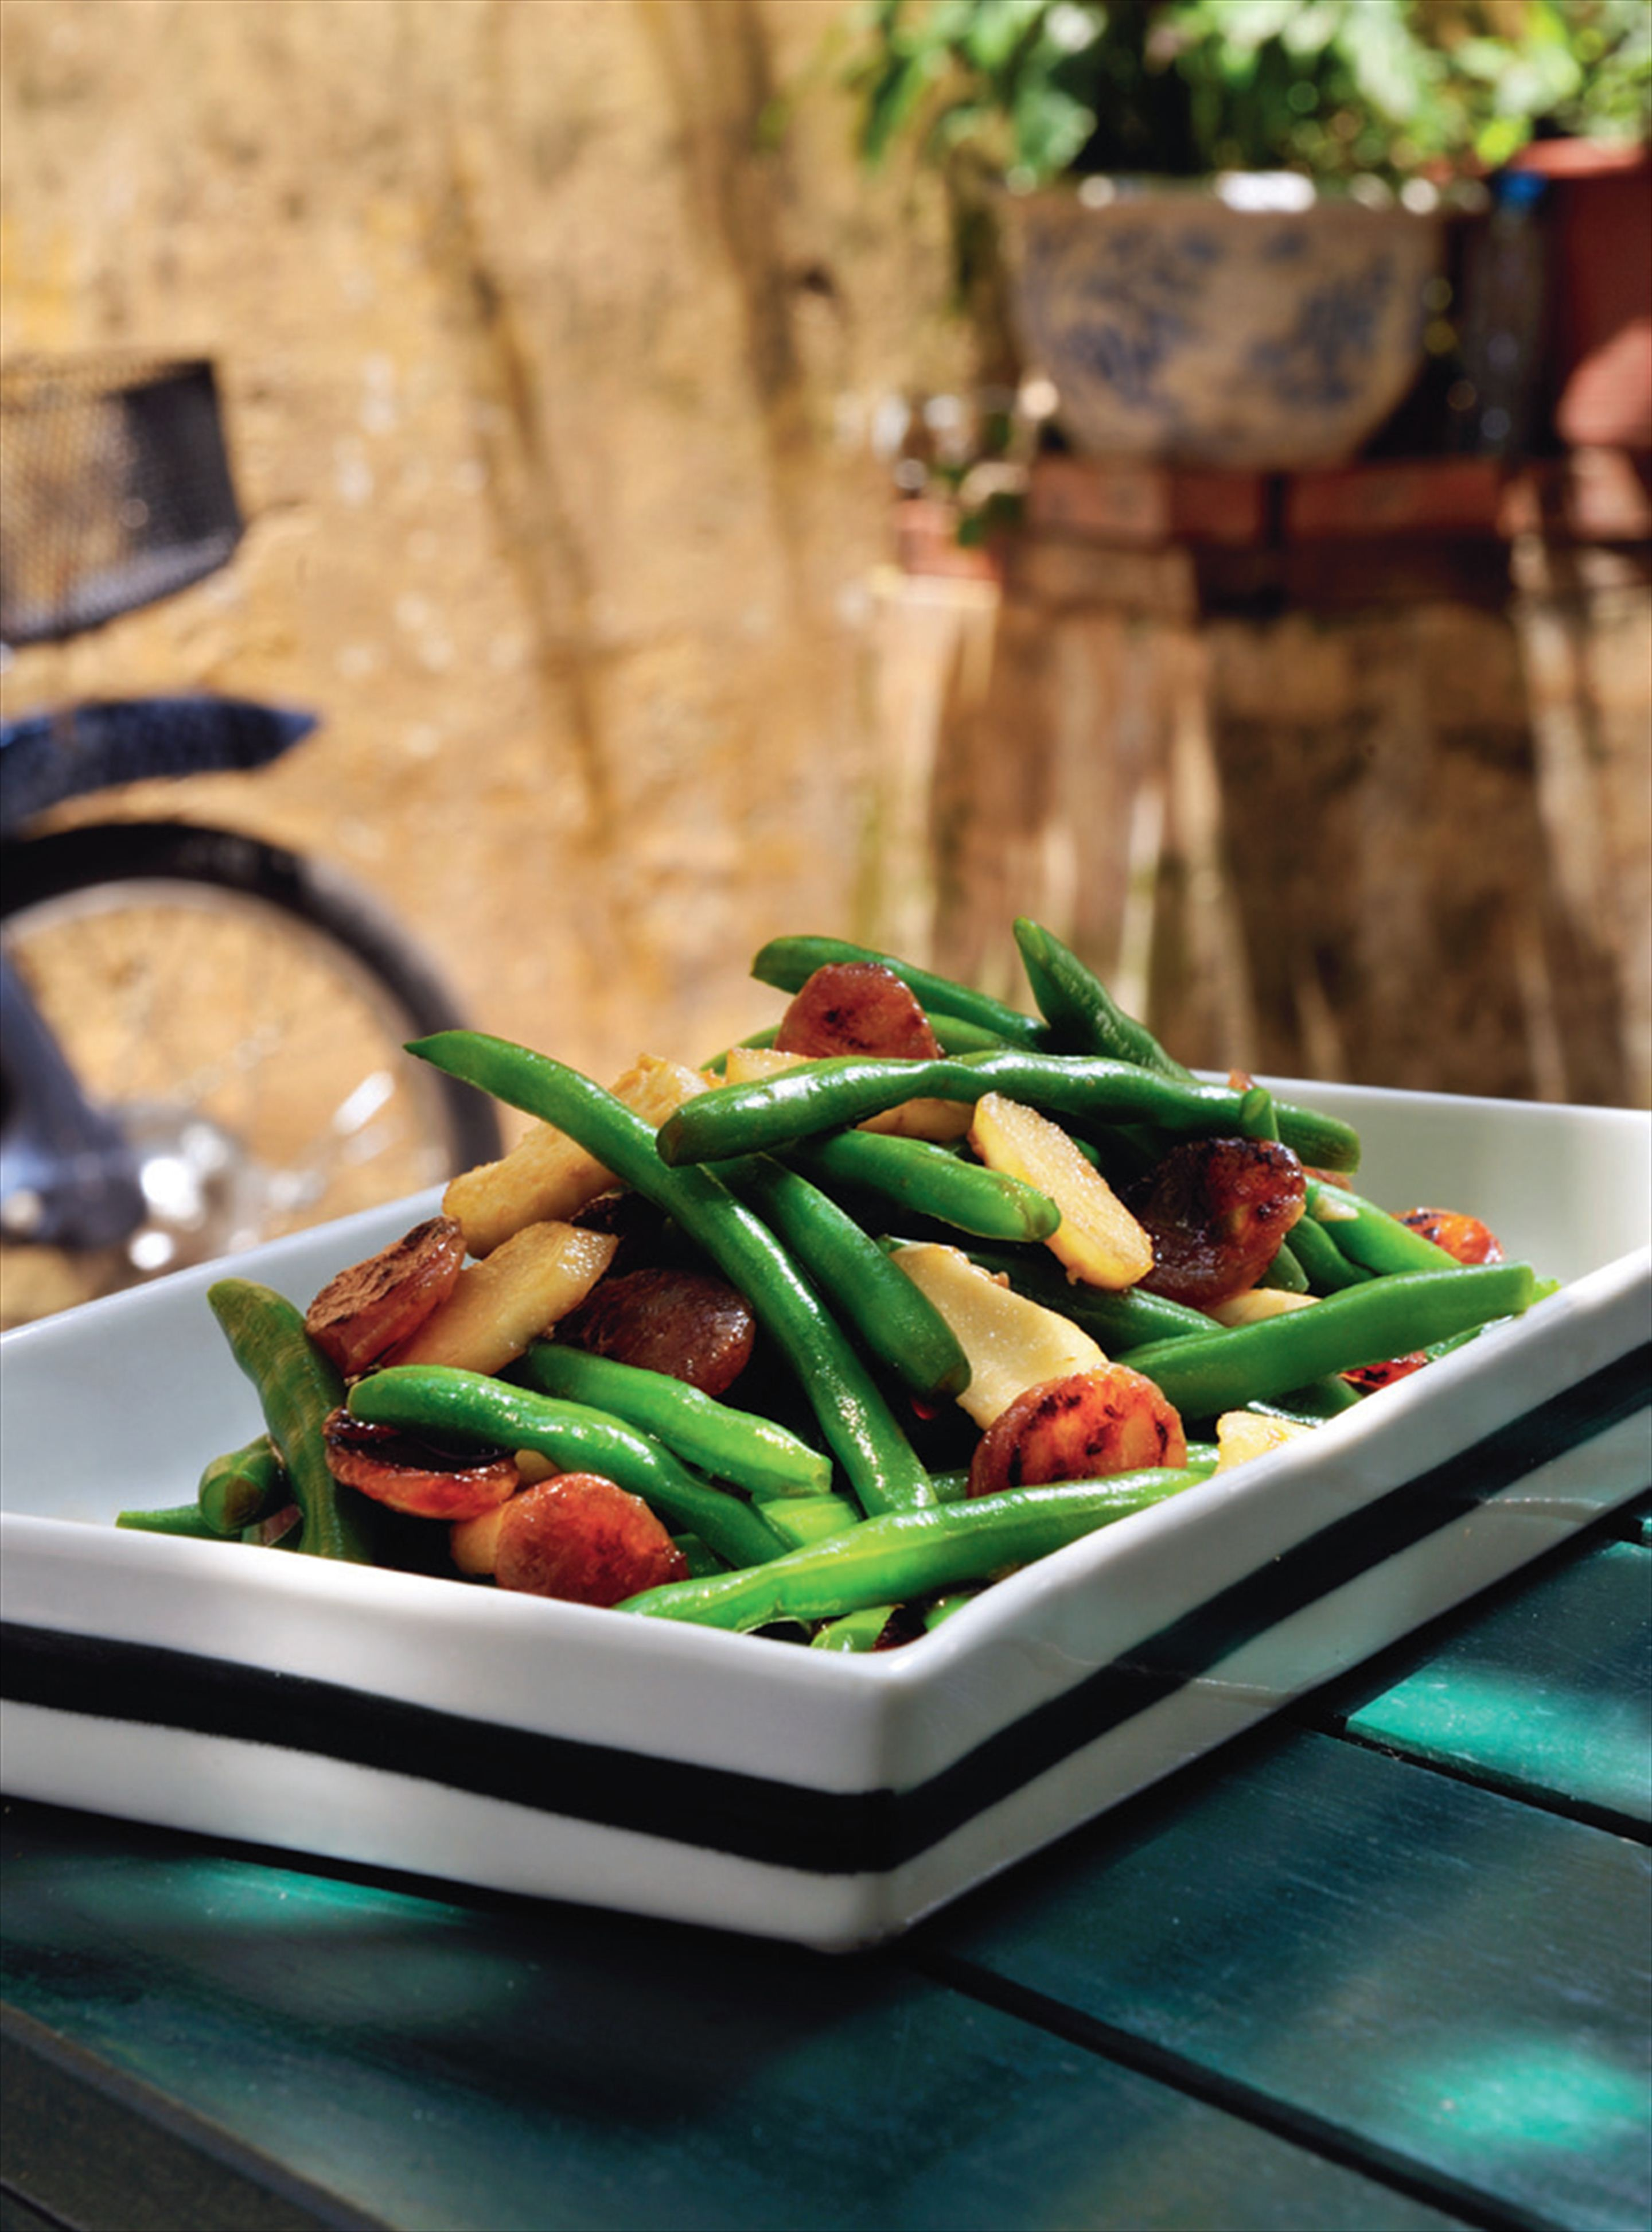 Green beans, lap cheong sausage and water chestnuts